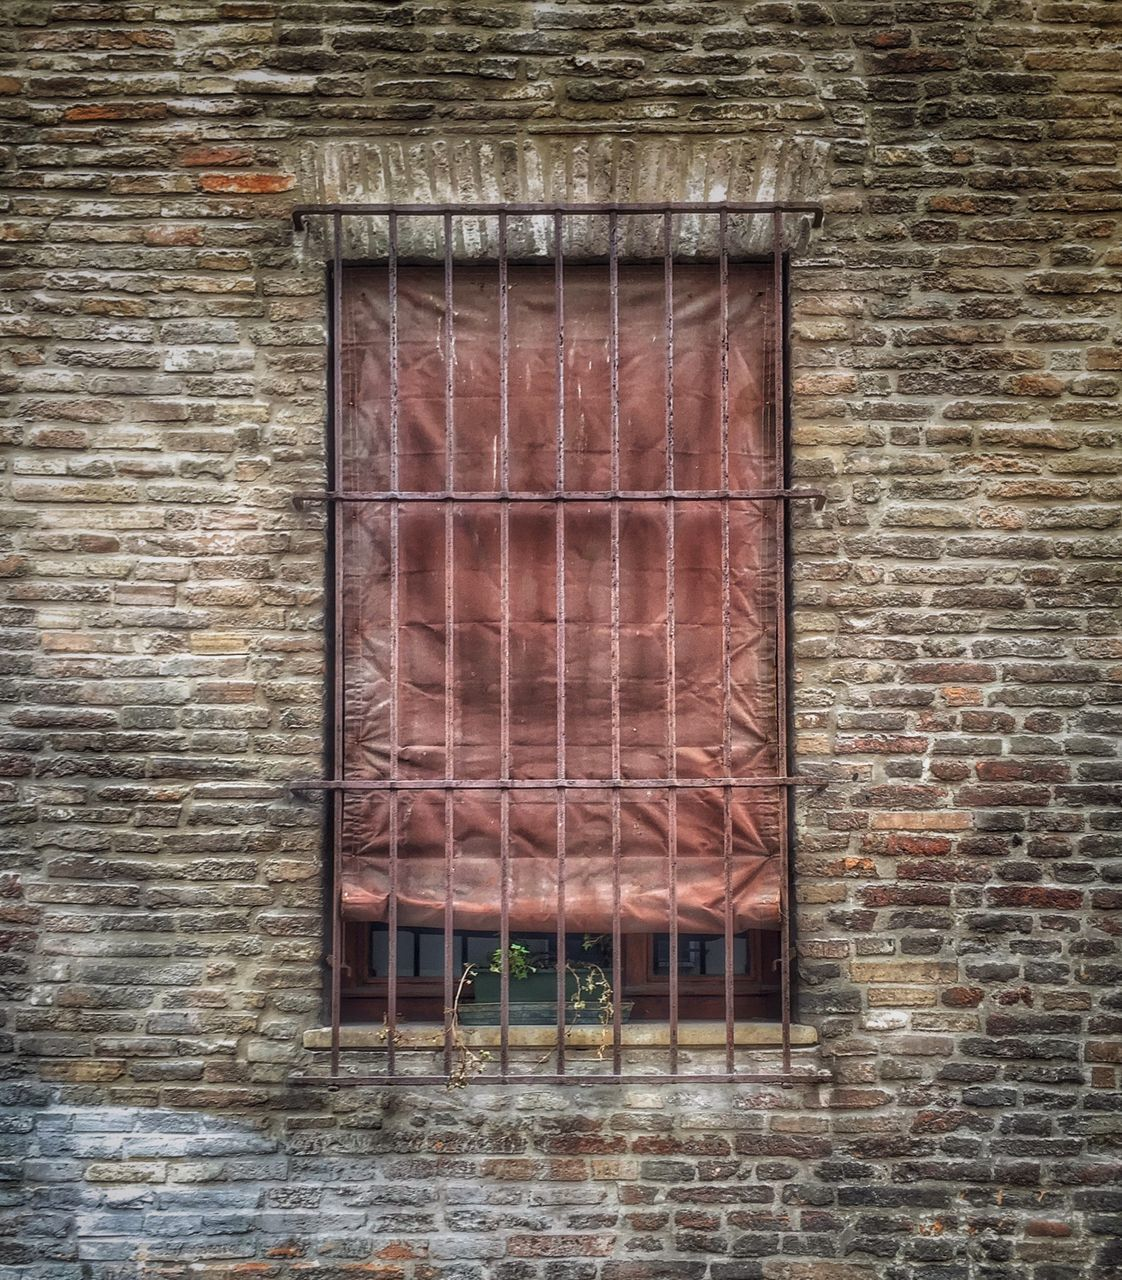 window, architecture, built structure, building exterior, closed, red, day, outdoors, weathered, window frame, no people